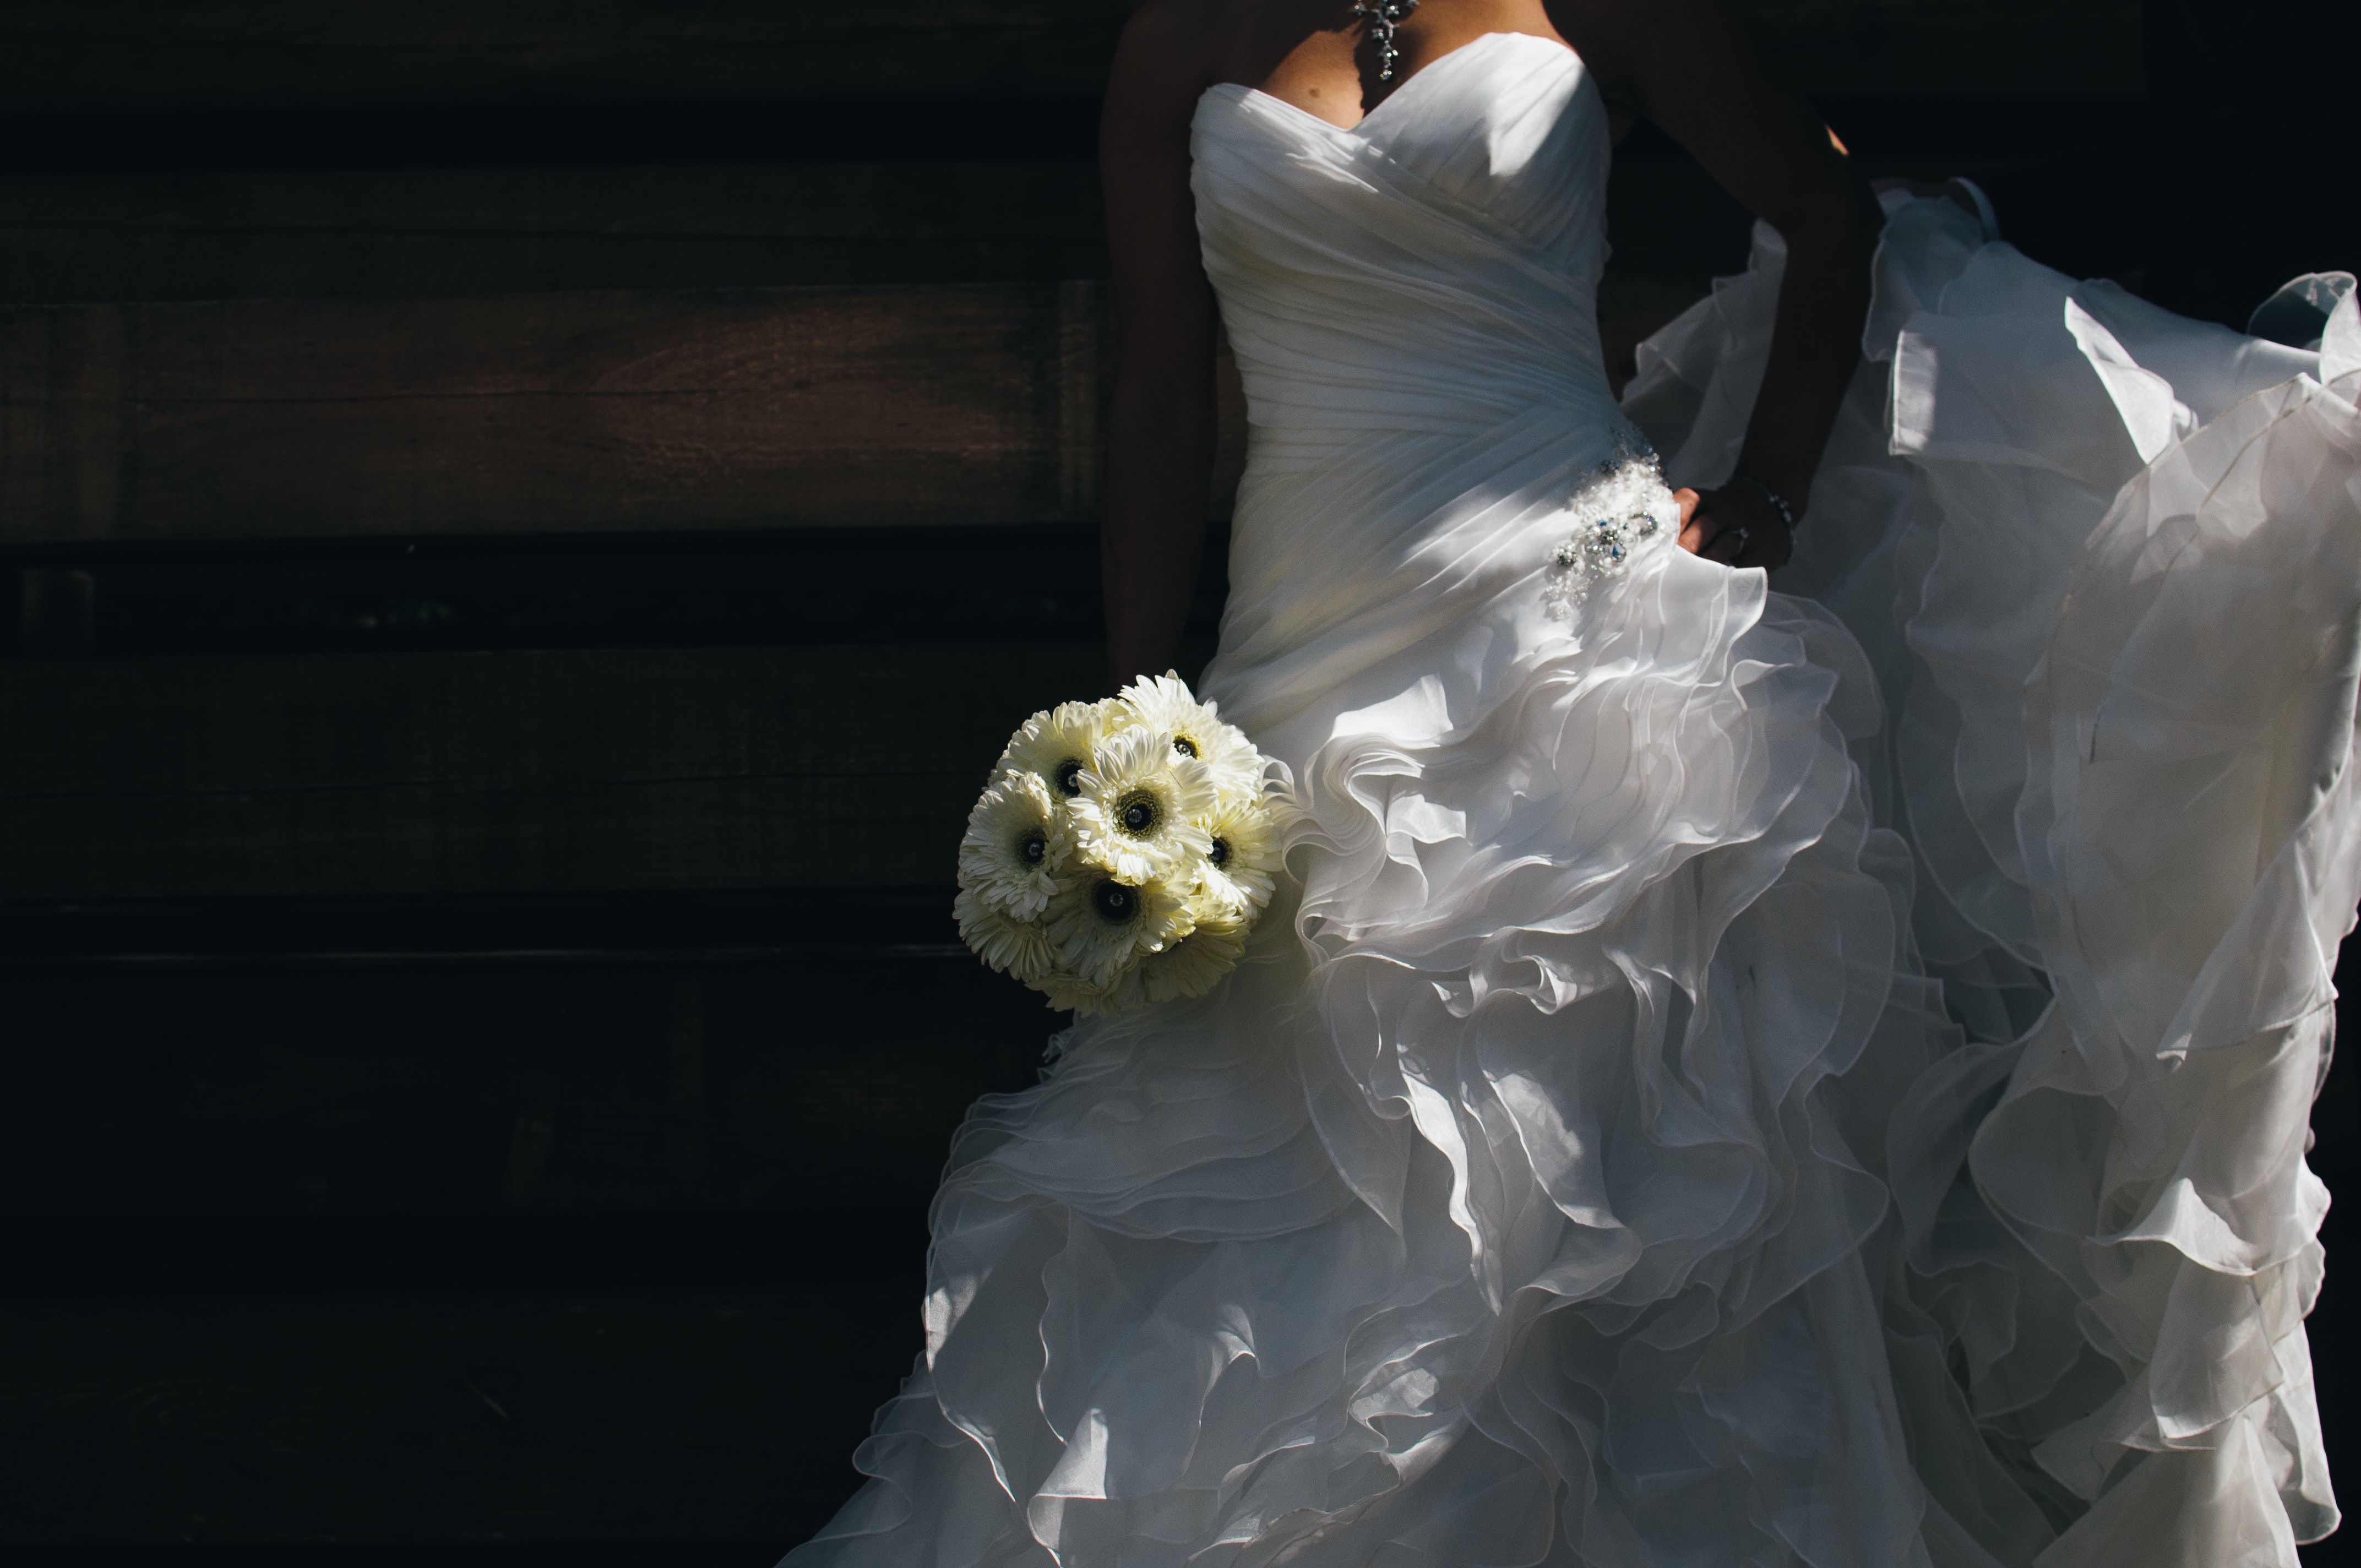 A bride holding her bouquet of daisies wearing a ruffled wedding dress